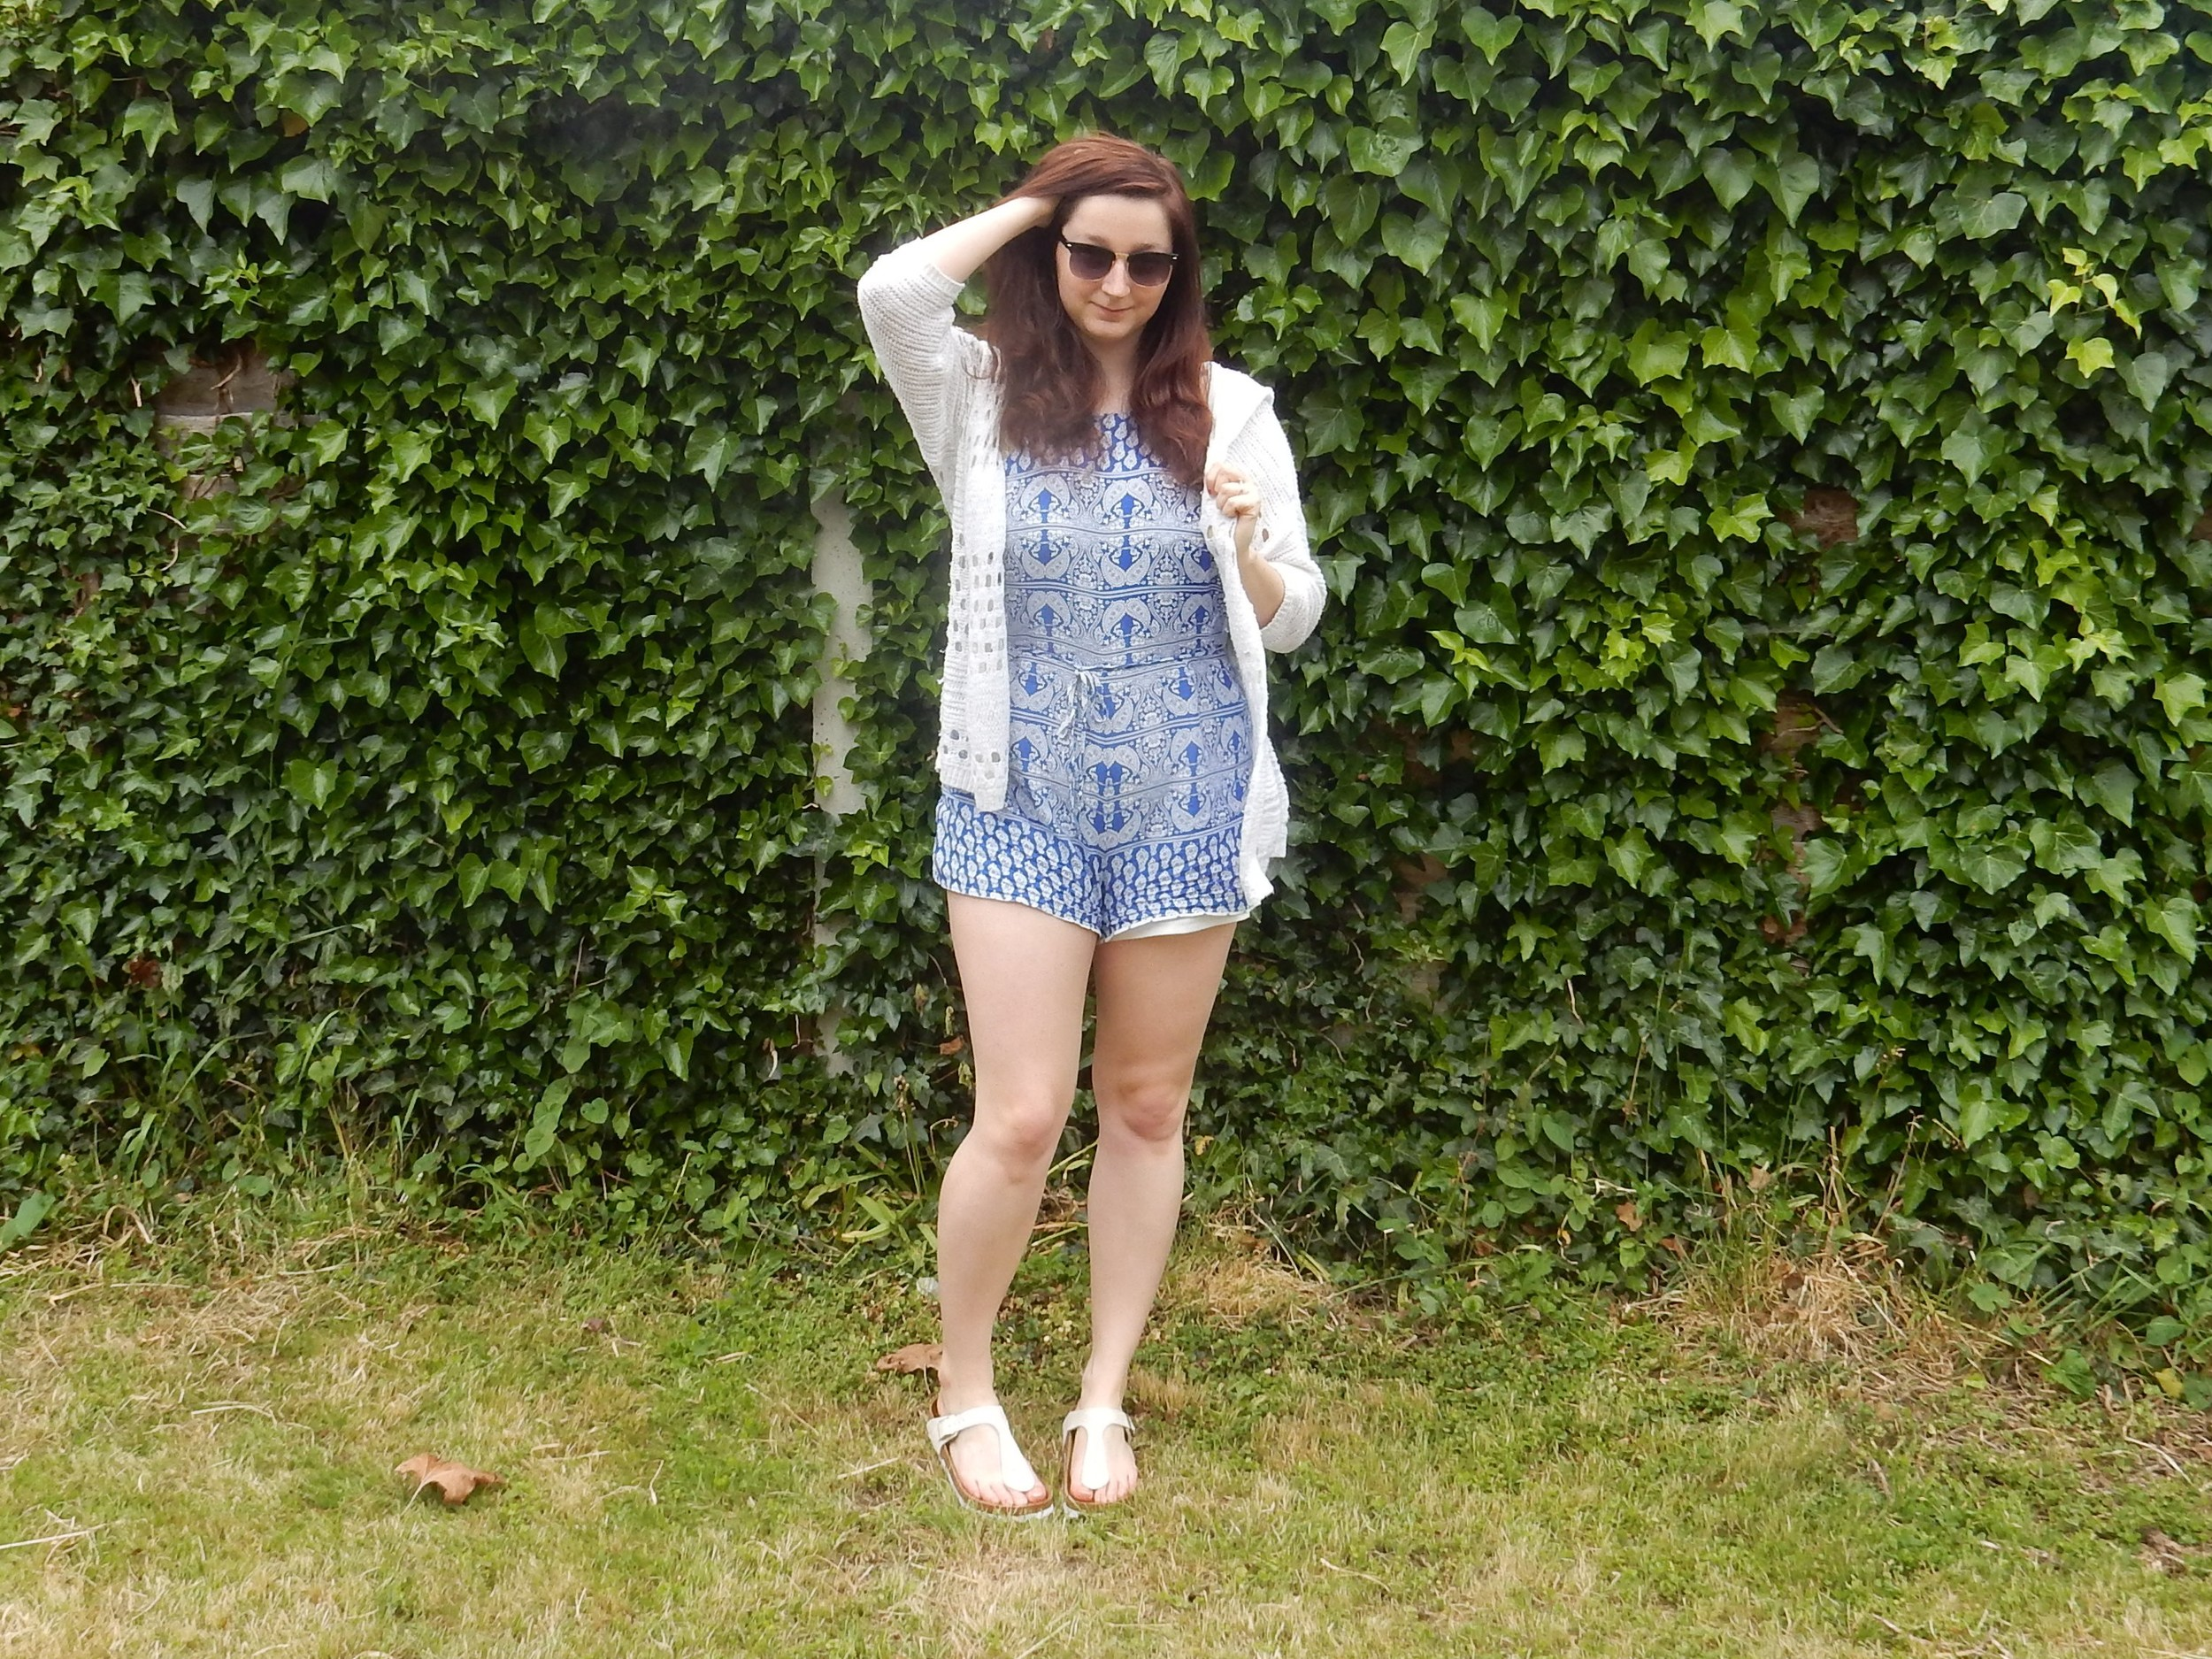 Conquering curvy playsuit ootd